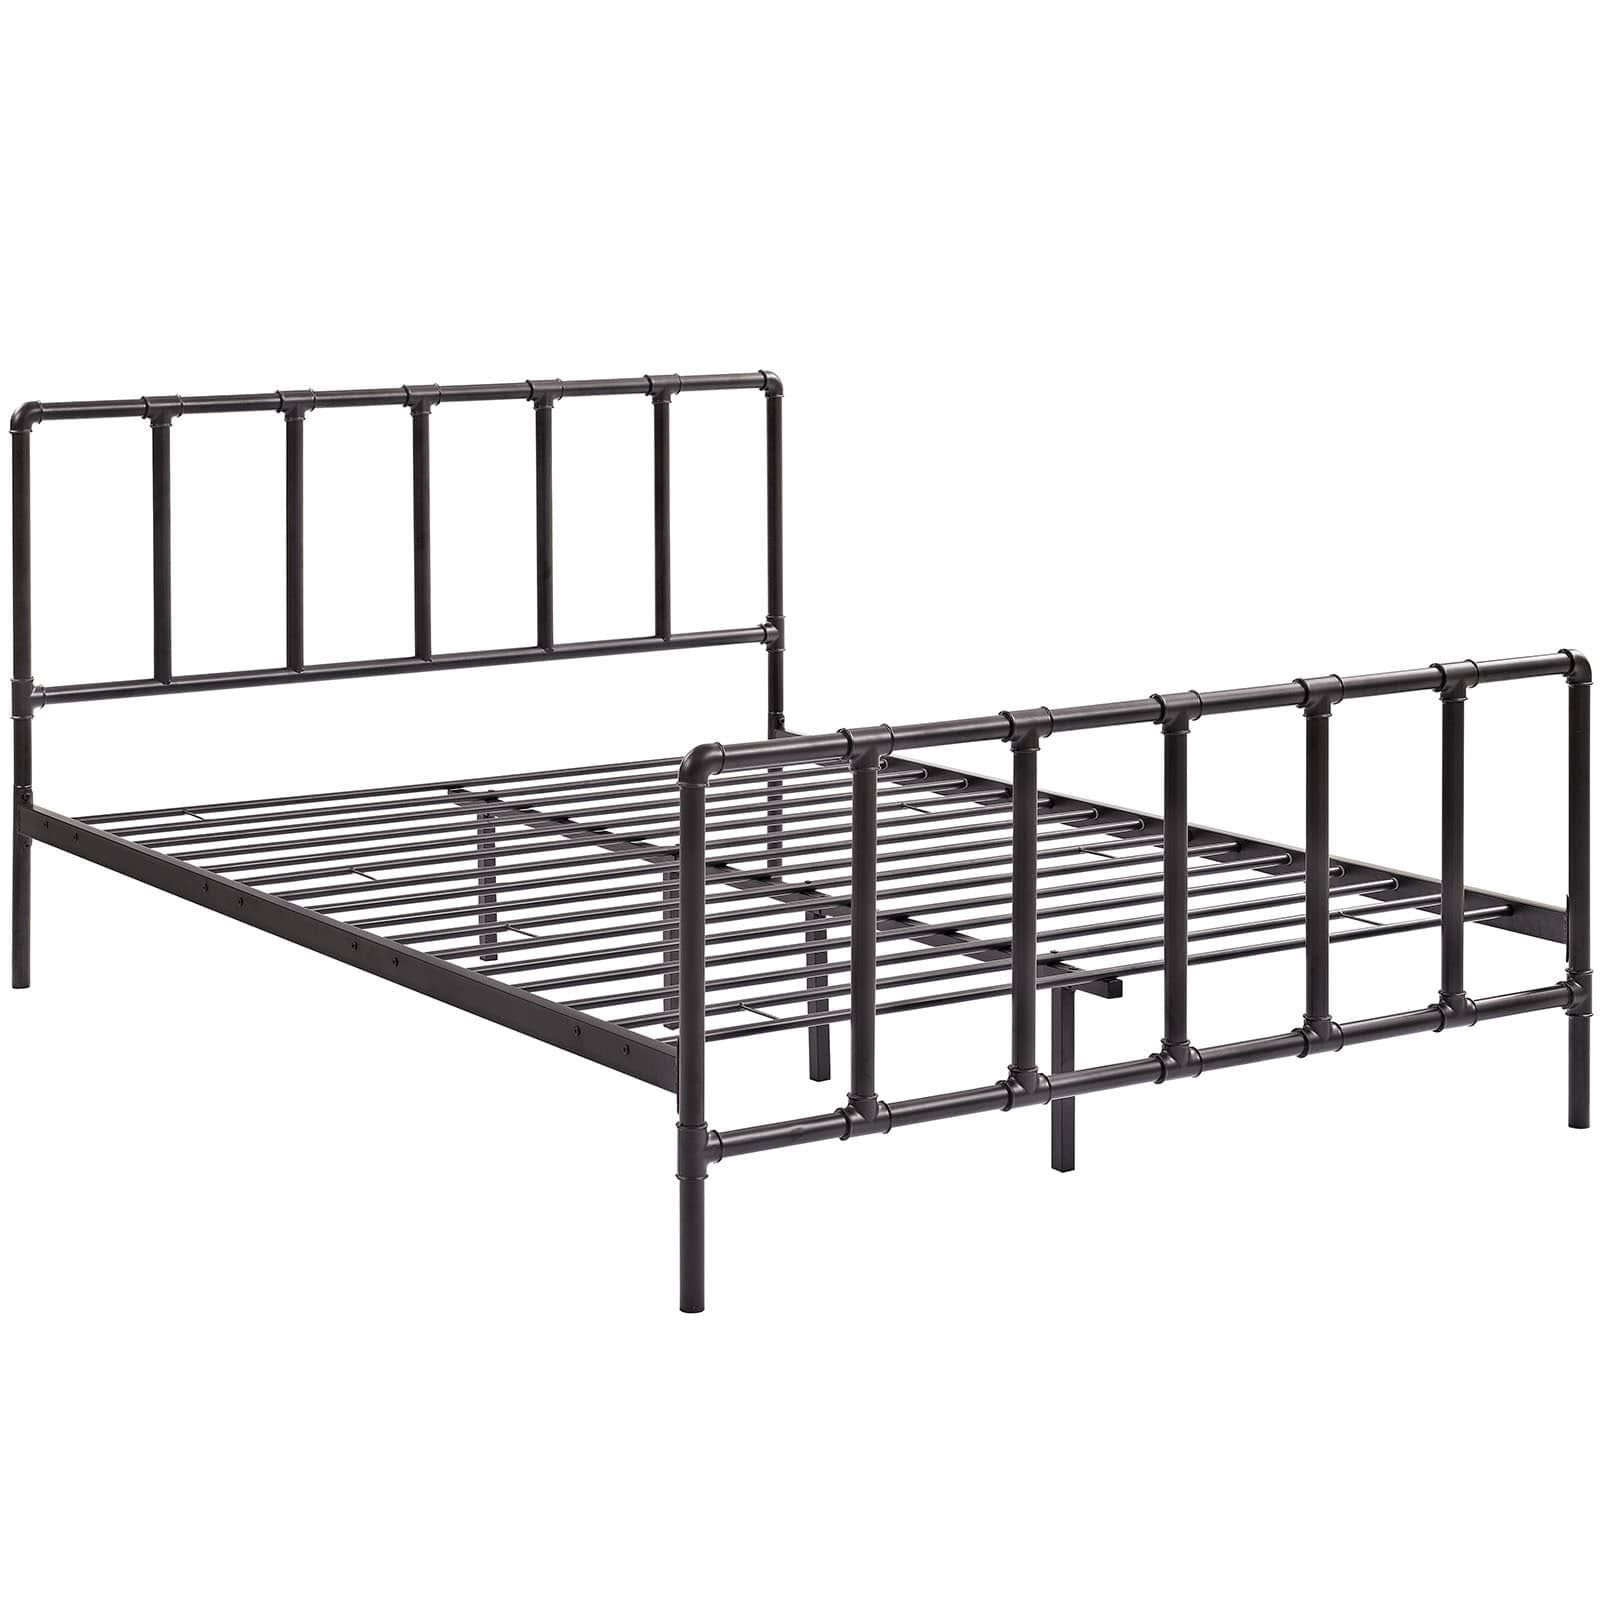 Dower Brown Industrial Pipe And Socket Platform Bed